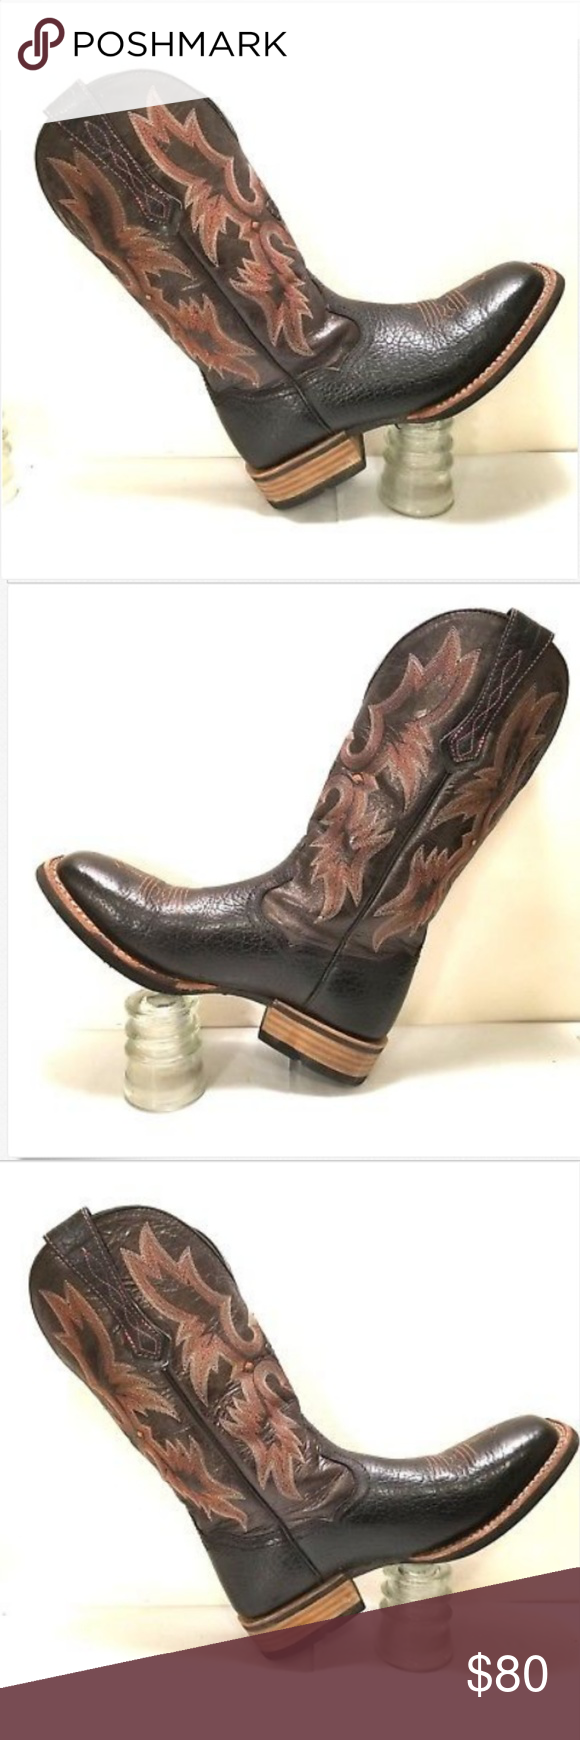 85243a7719b Ariat mens Western Boots Wide Square Toe sz 8D Ariat mens Western ...